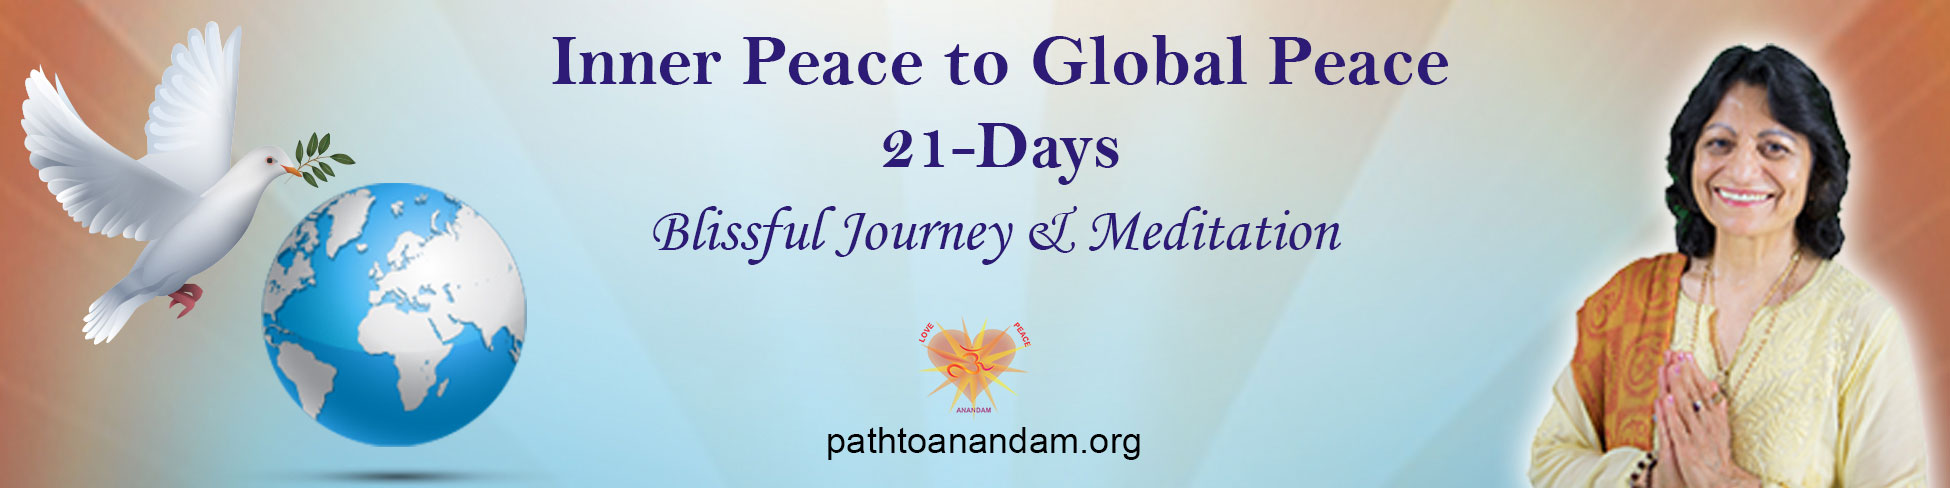 Inner Peace to Global Peace